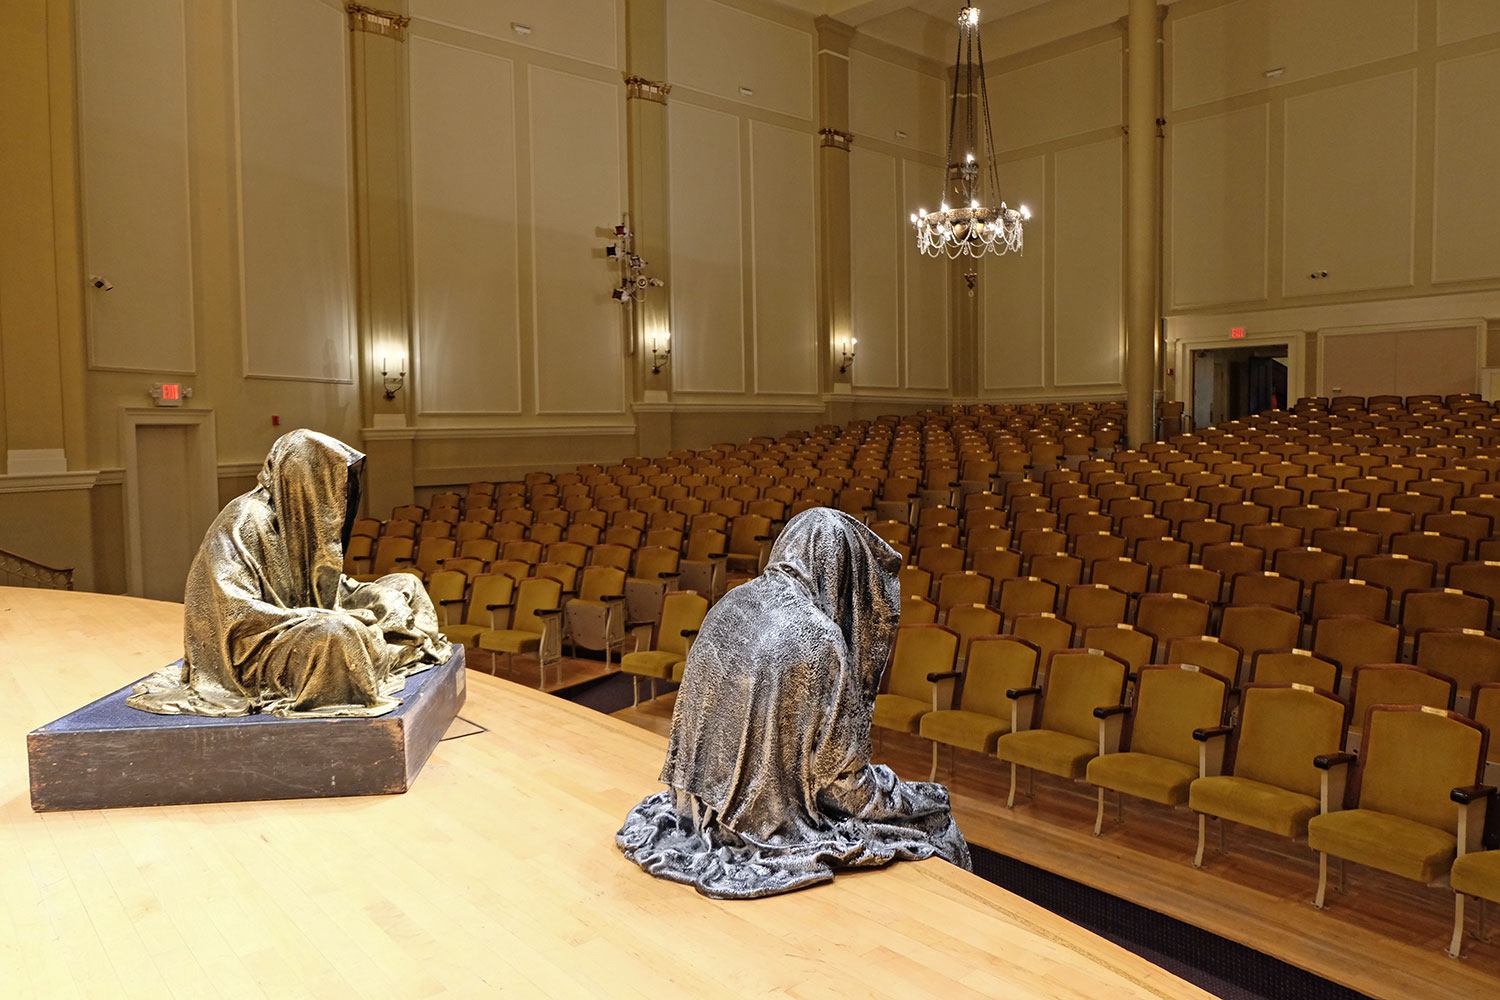 artprize-grand-rapids-mishigan-usa-contemporary-art-arts-sculpture-show-guardians-of-time-manfred-kili-kielnhofer-7406